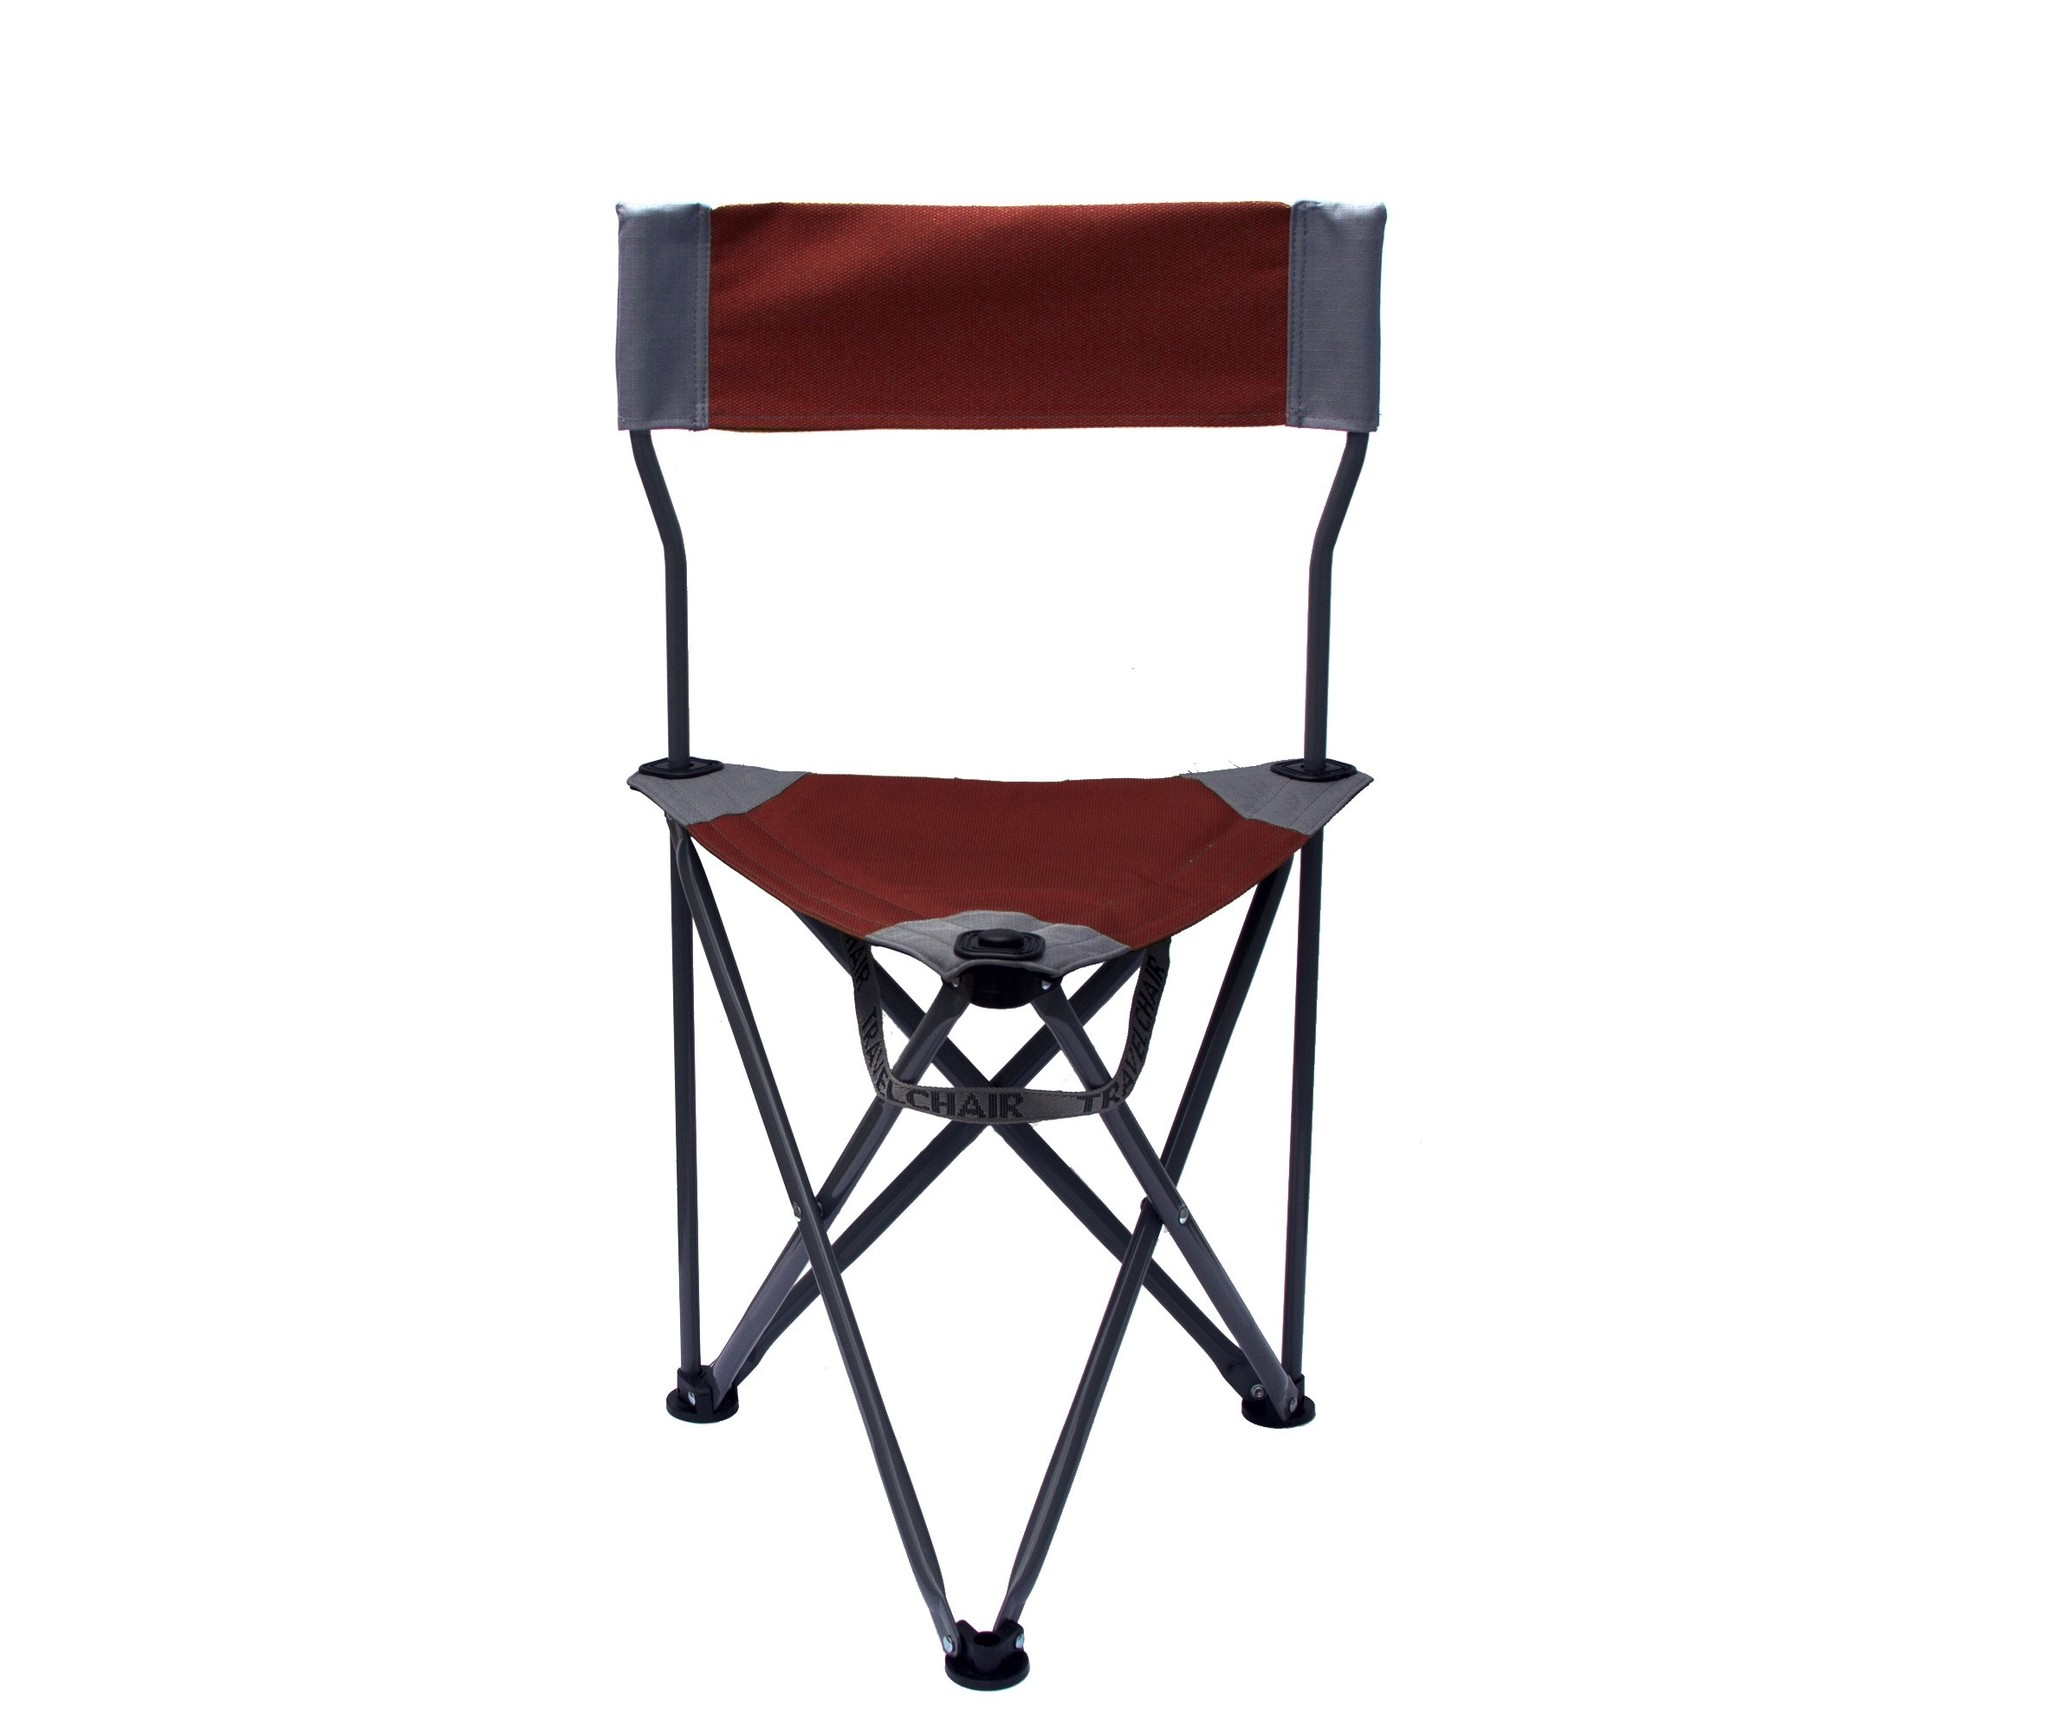 Travelchair TravelChair Ultimate Slacker Stool 2.0